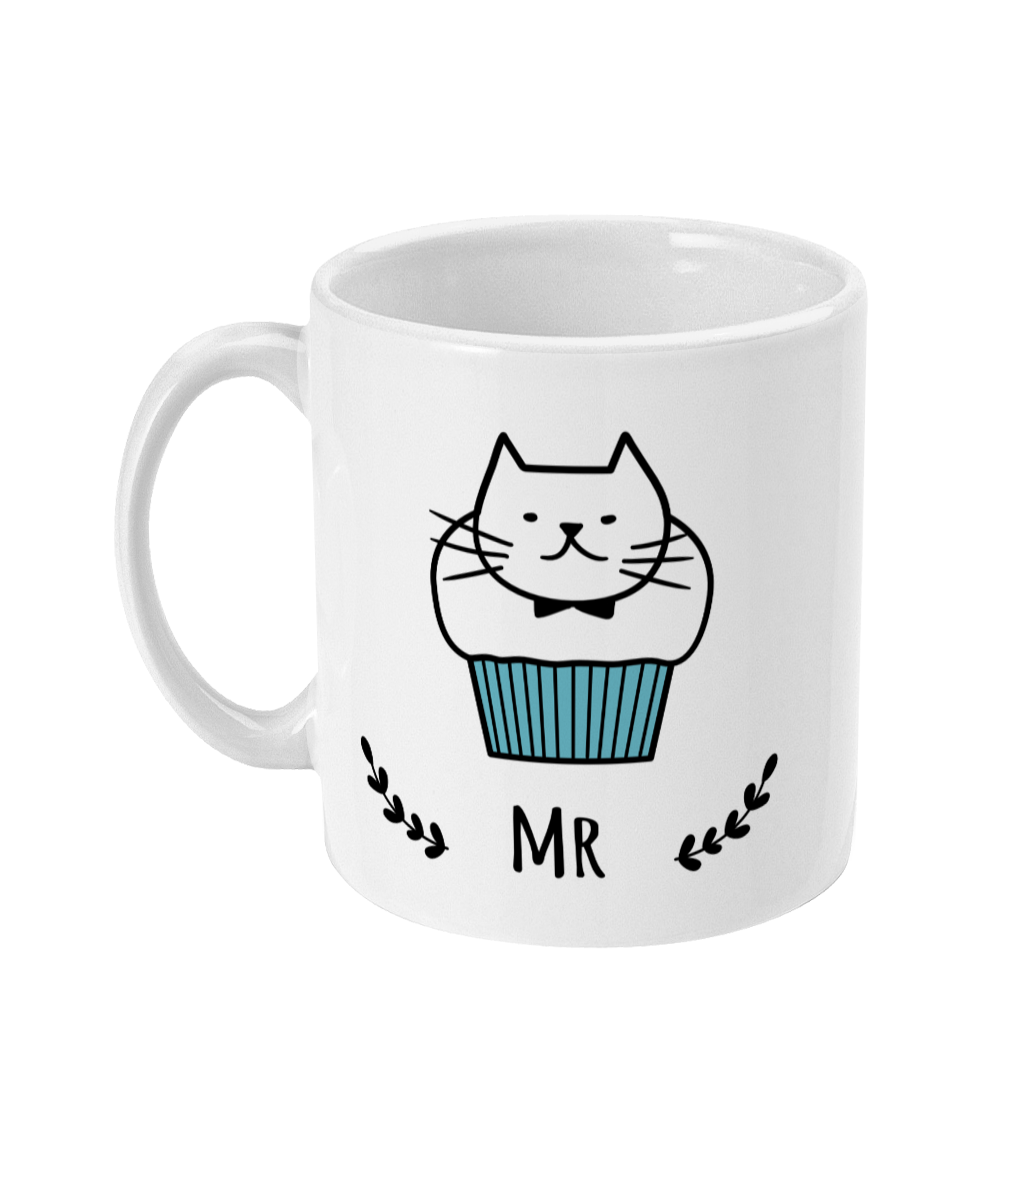 11oz Ceramic Mug Mr Cat Muffin